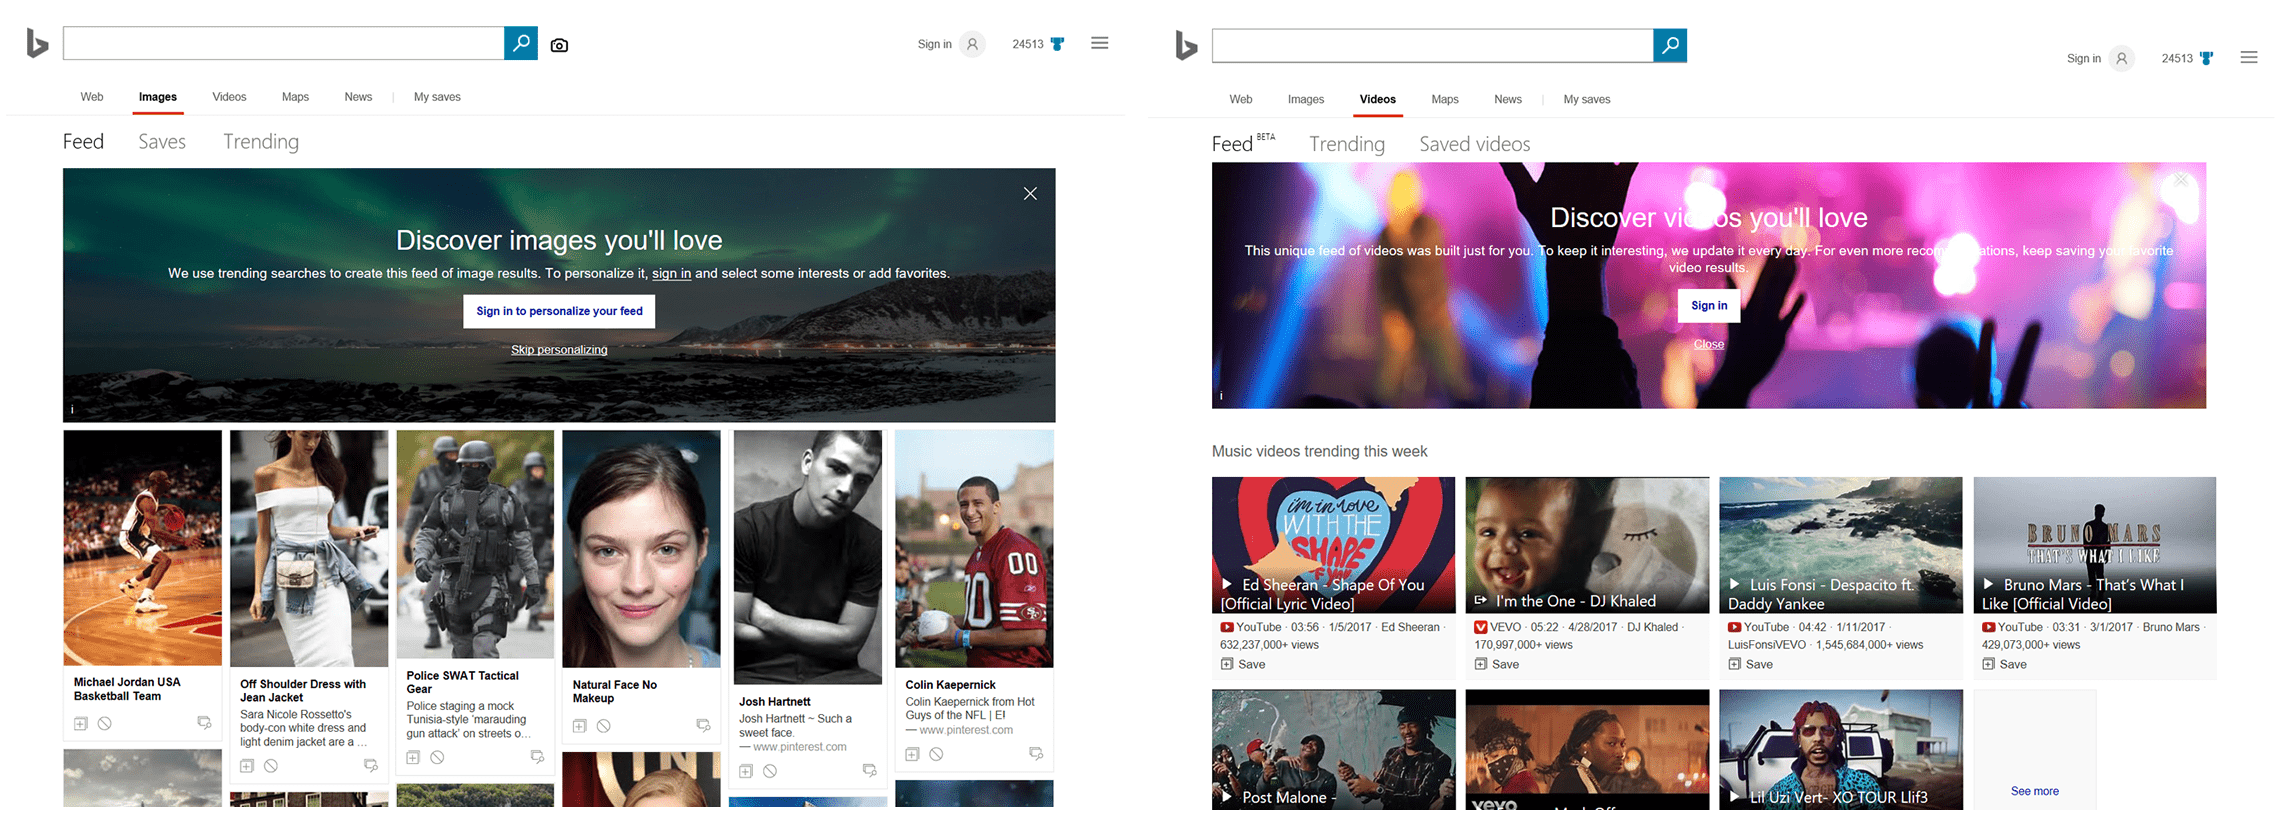 Bing Introduces Personalized Image and Video Feeds